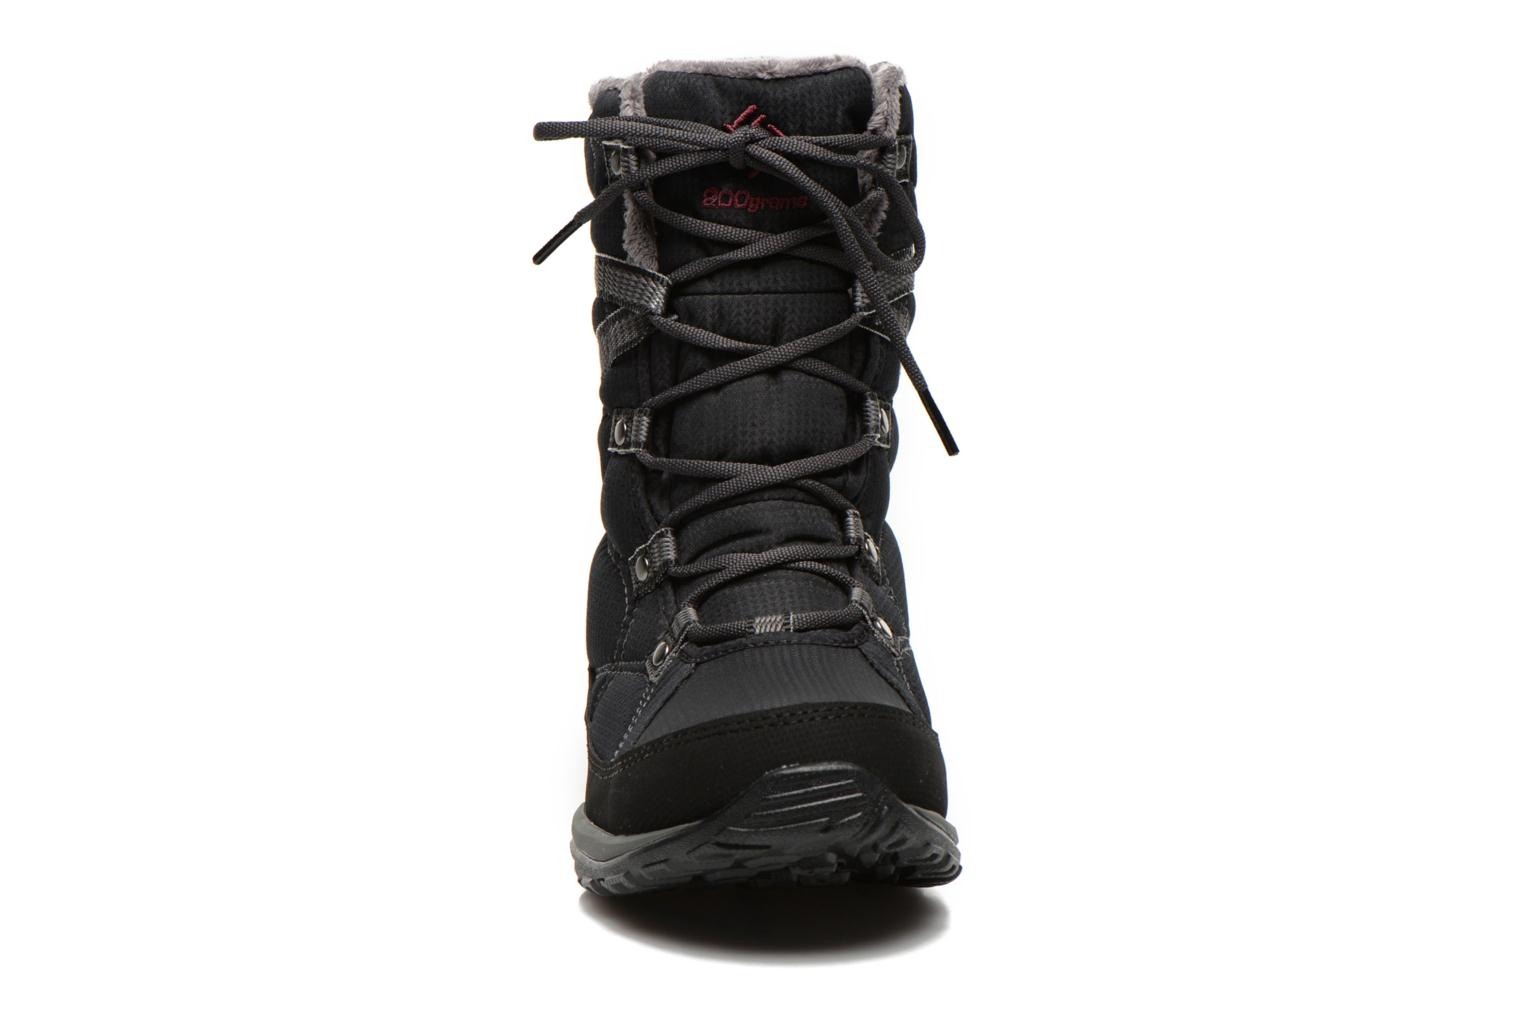 Minx Fire Tall Omni-Heat Waterproof Black, Dark raspberry